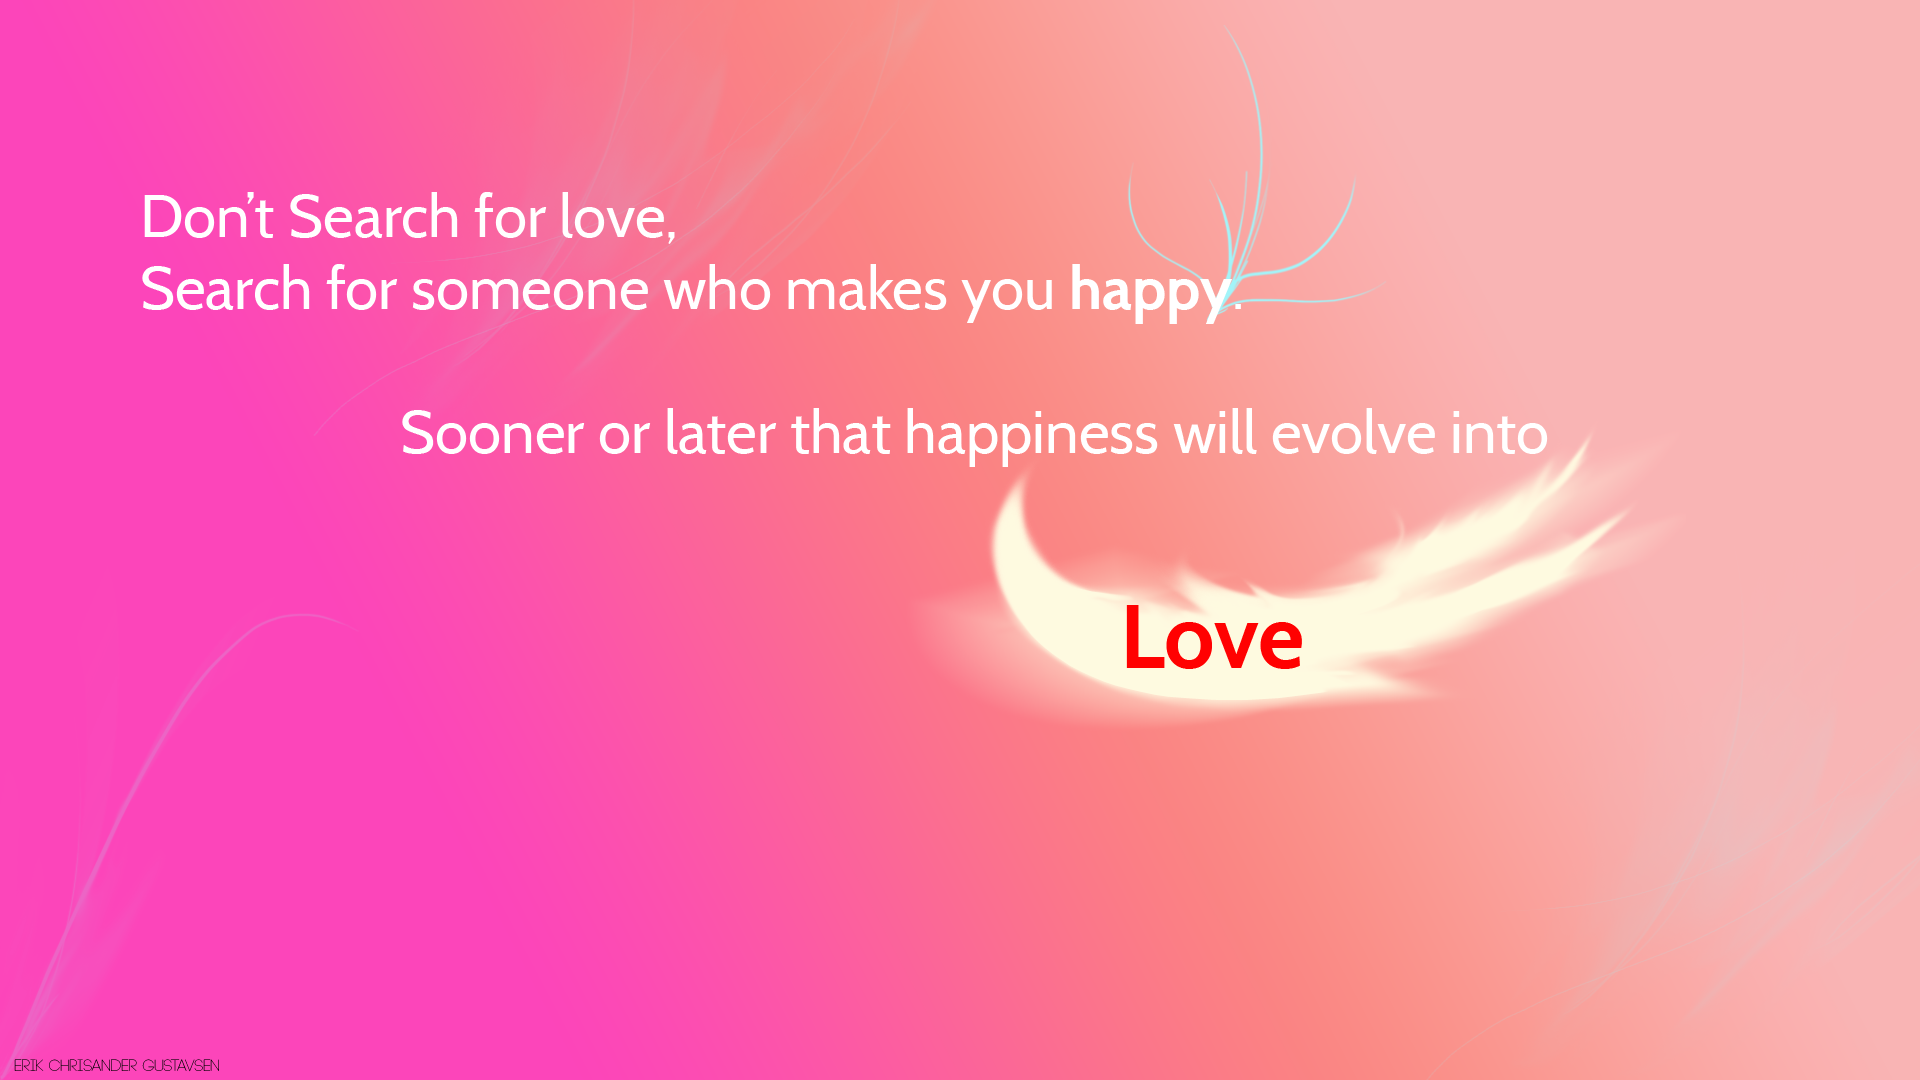 Best Love Quotes Wallpapers - WallpaperSafari